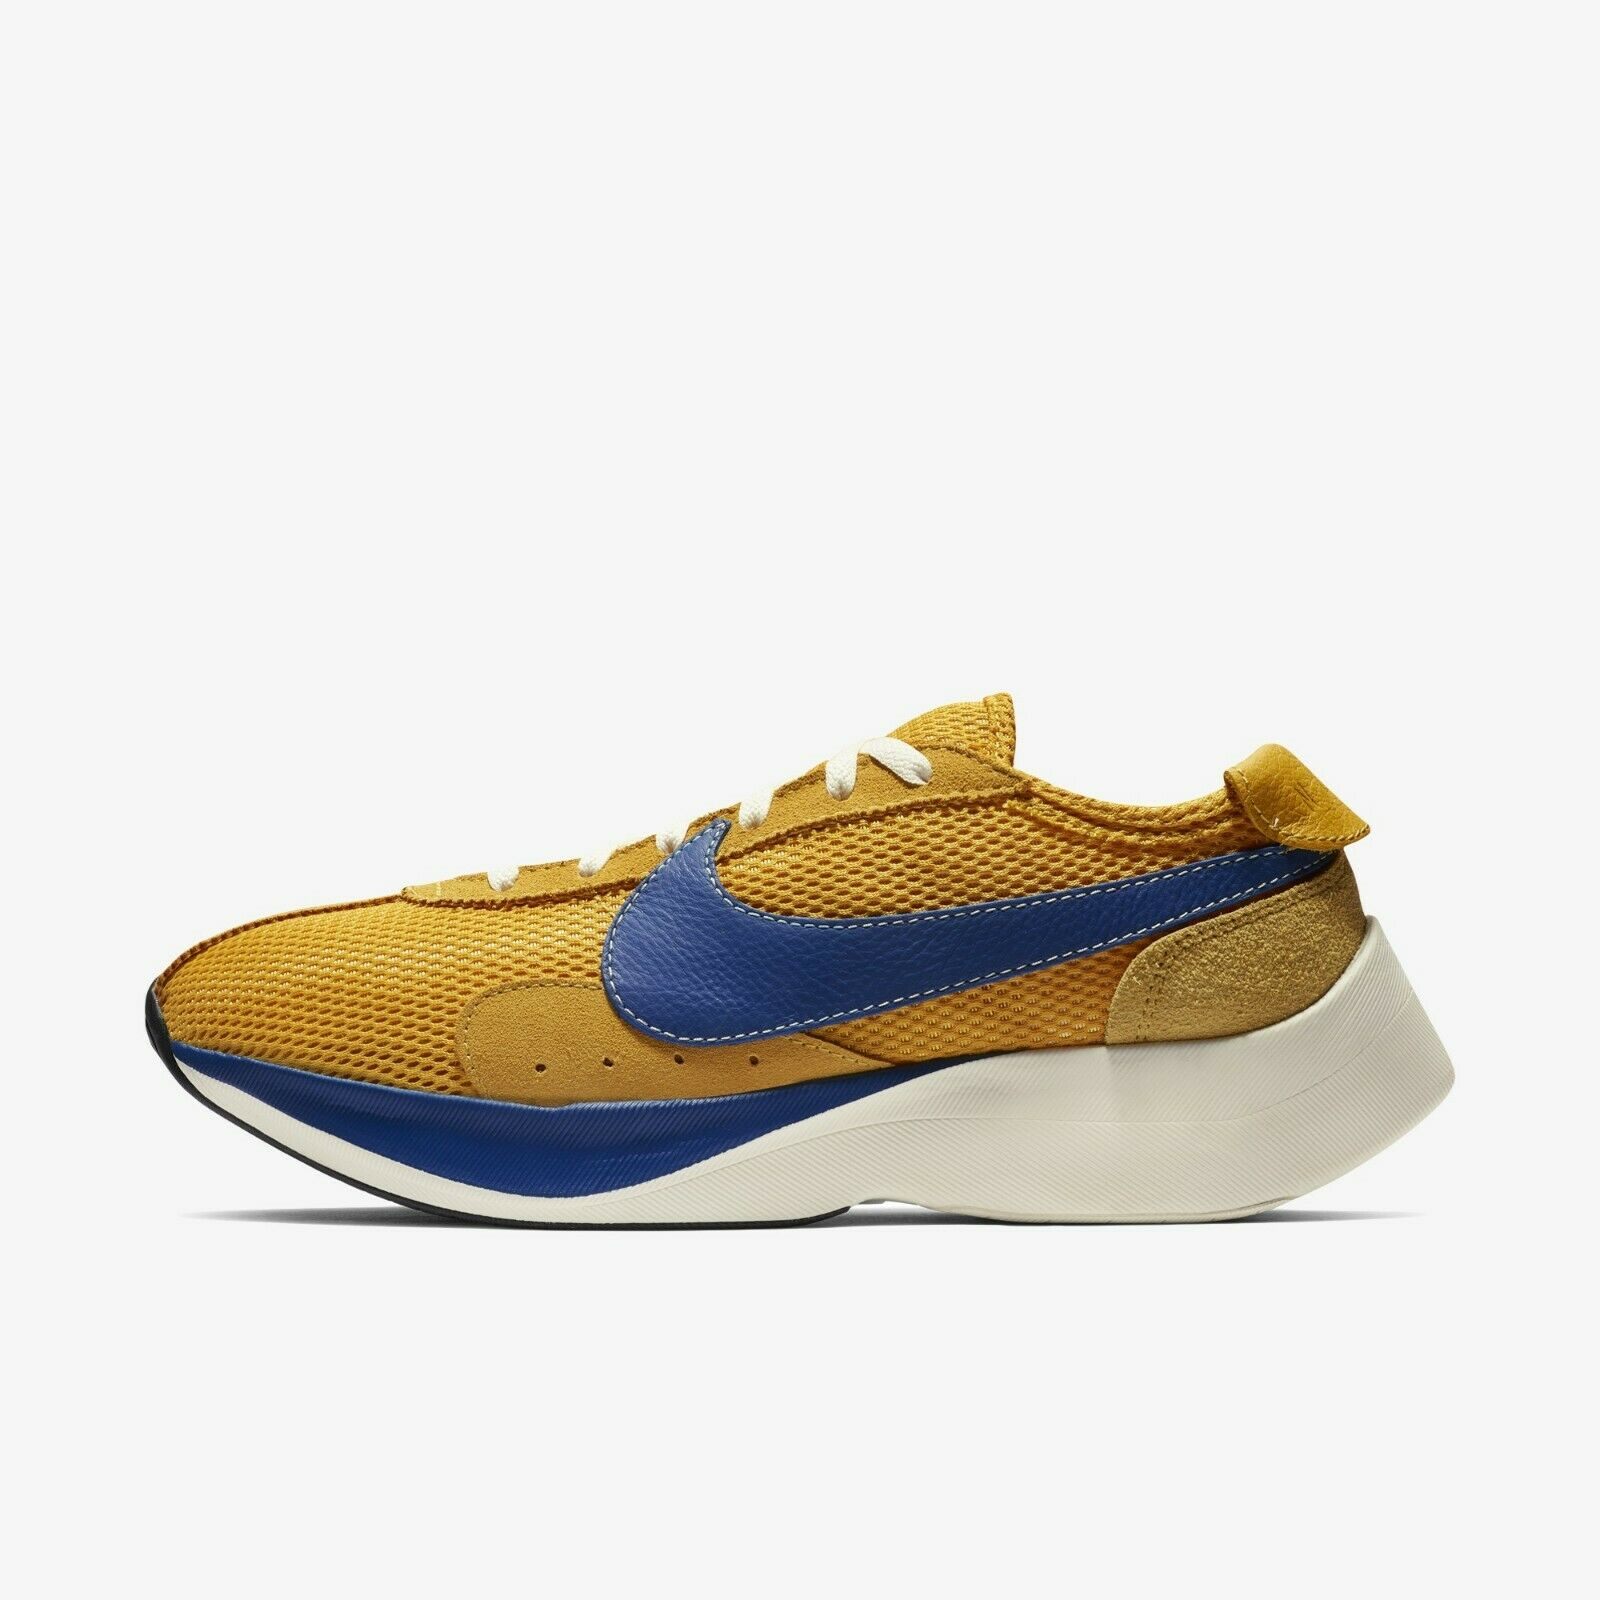 New Nike Men's Moon Racer Athletic shoes- Yellow Oaker Gym bluee Sail(BV7779-700)